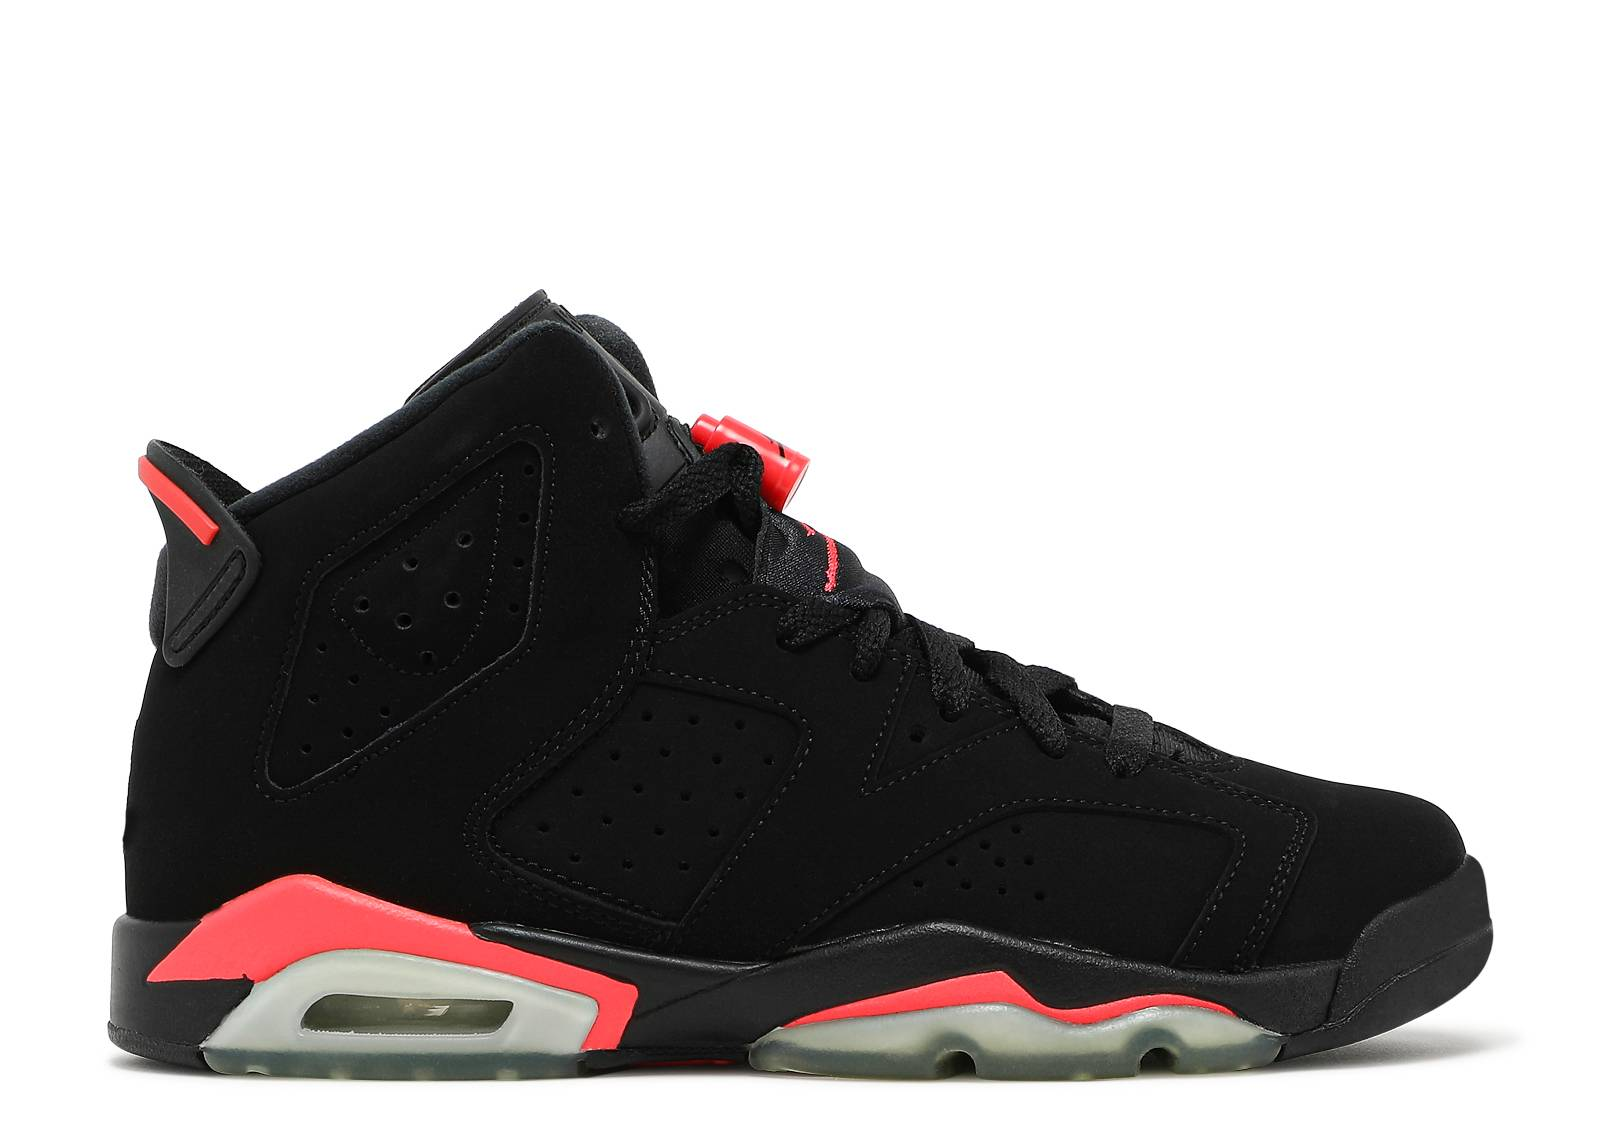 nike air jordan 6 retro bg (gs) bred black infrared sauna